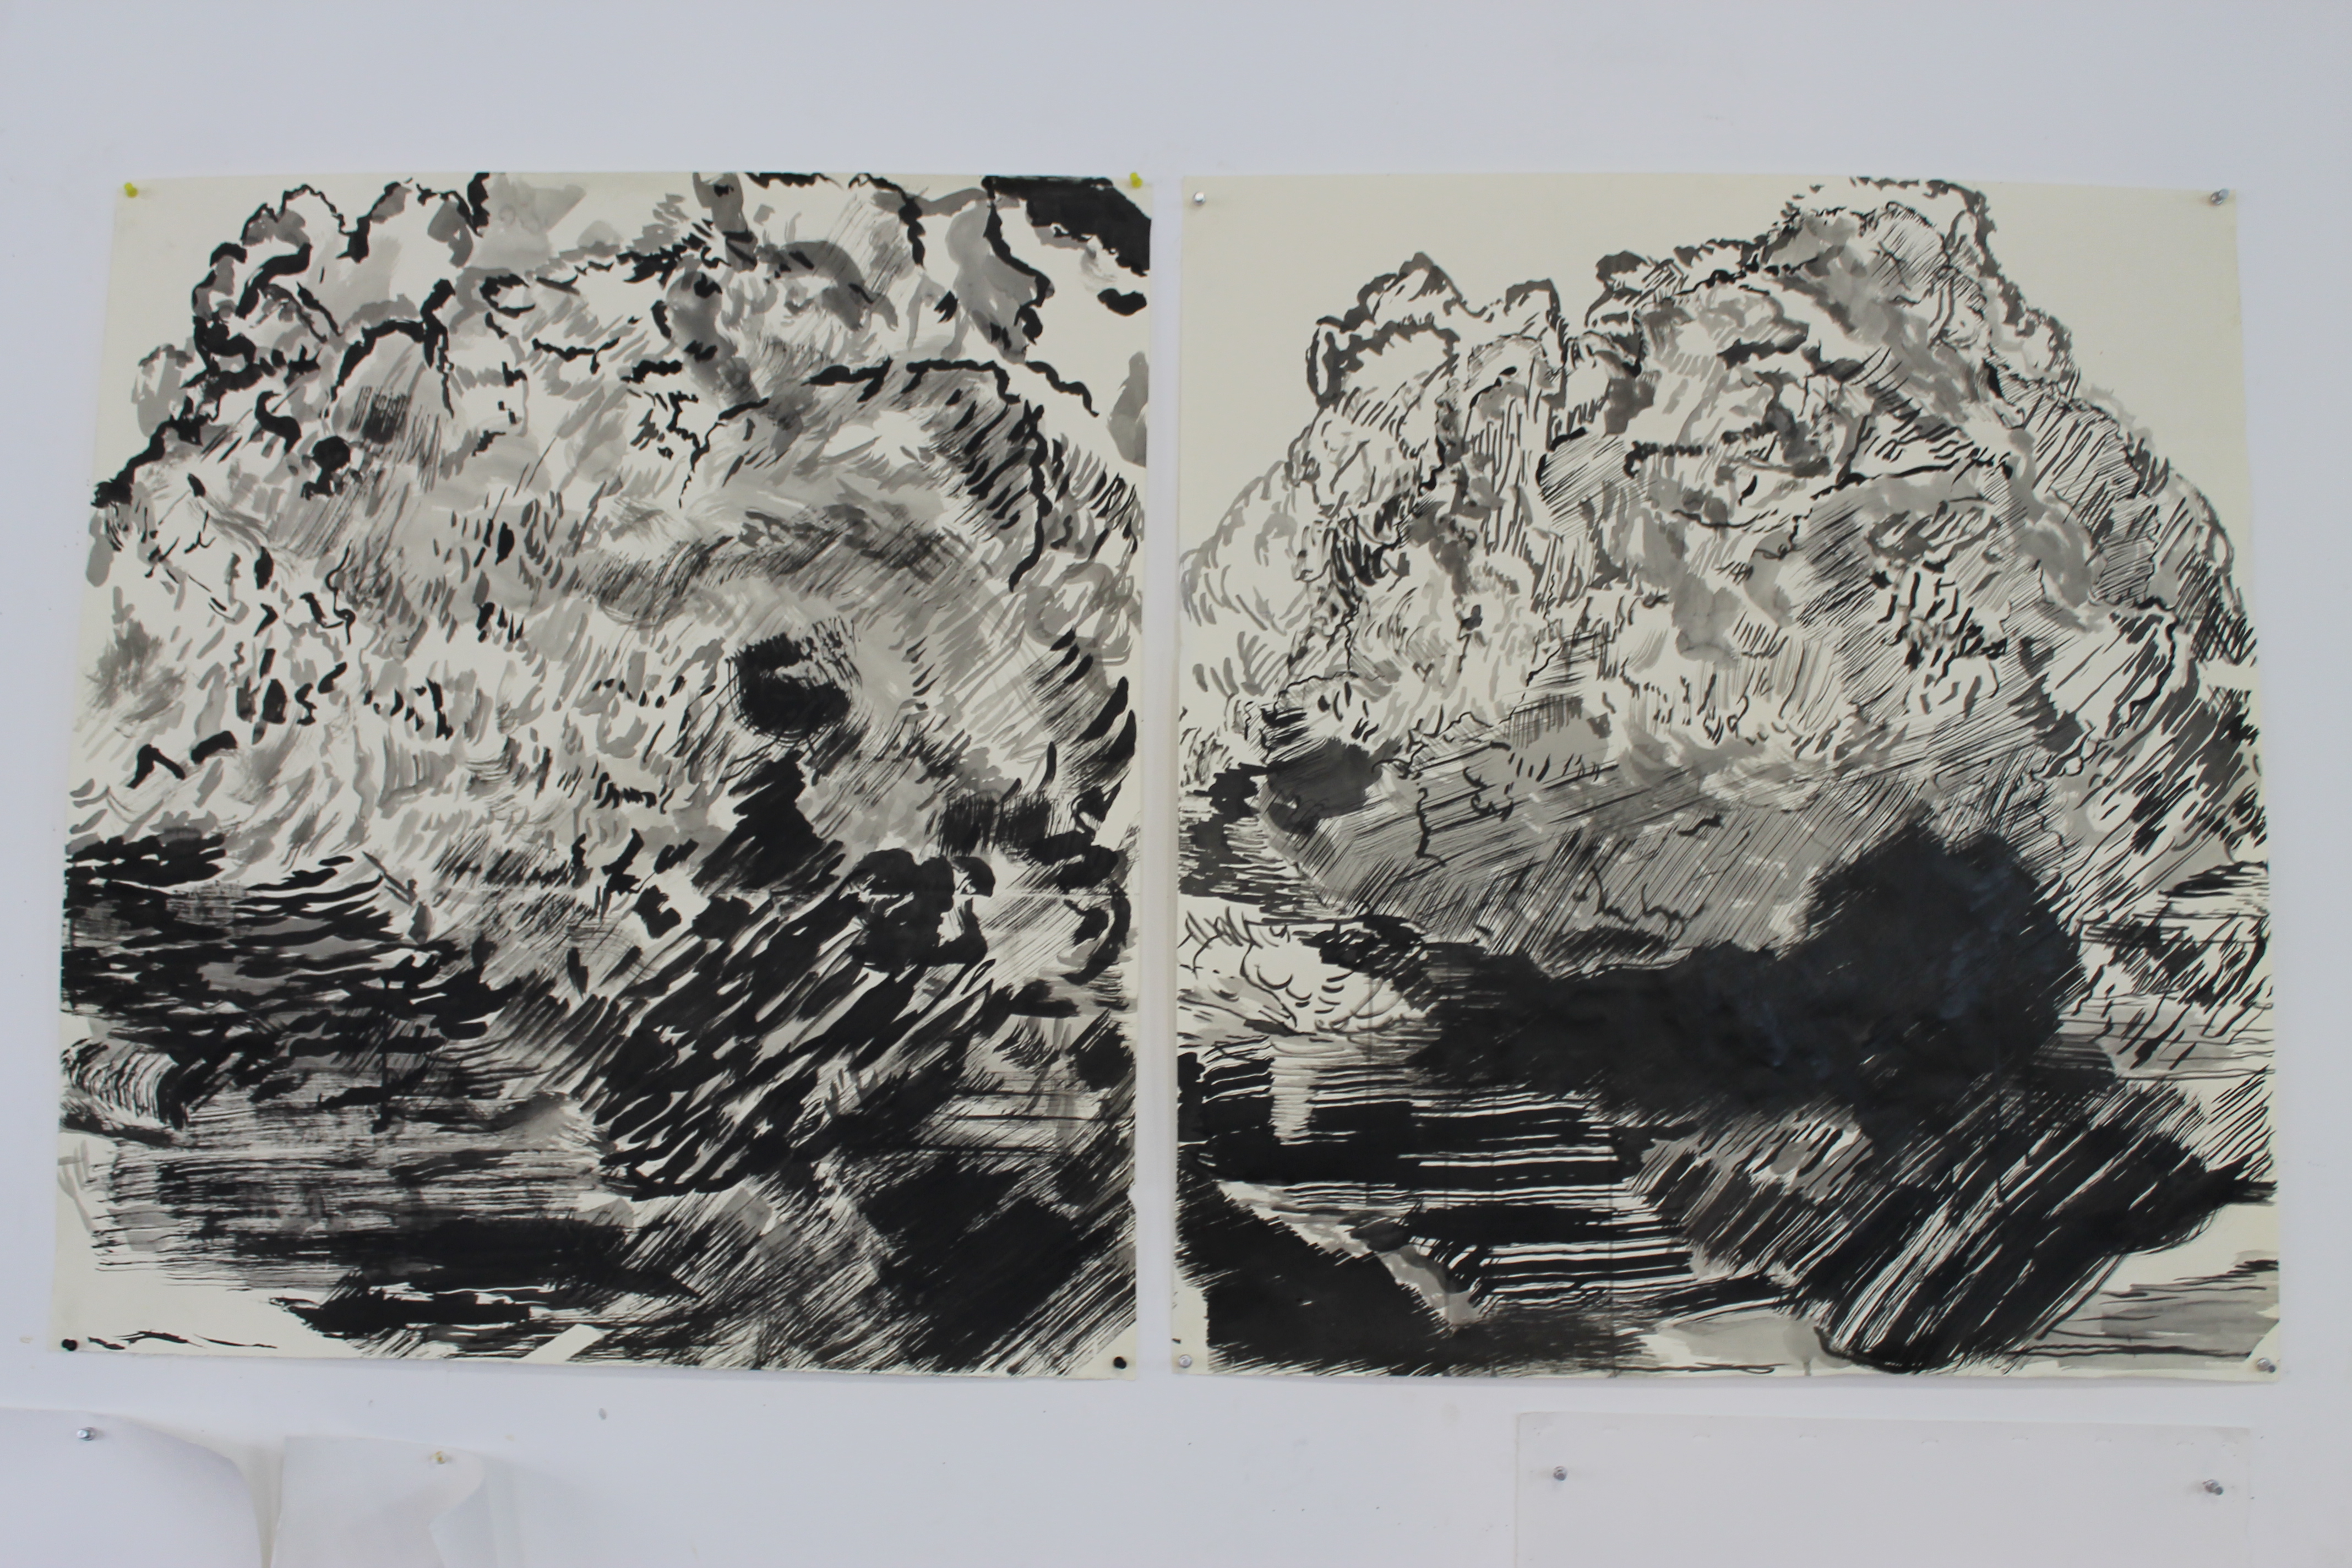 Penn made two ink drawings of the same cloud image, experimenting with different marks and compositions.